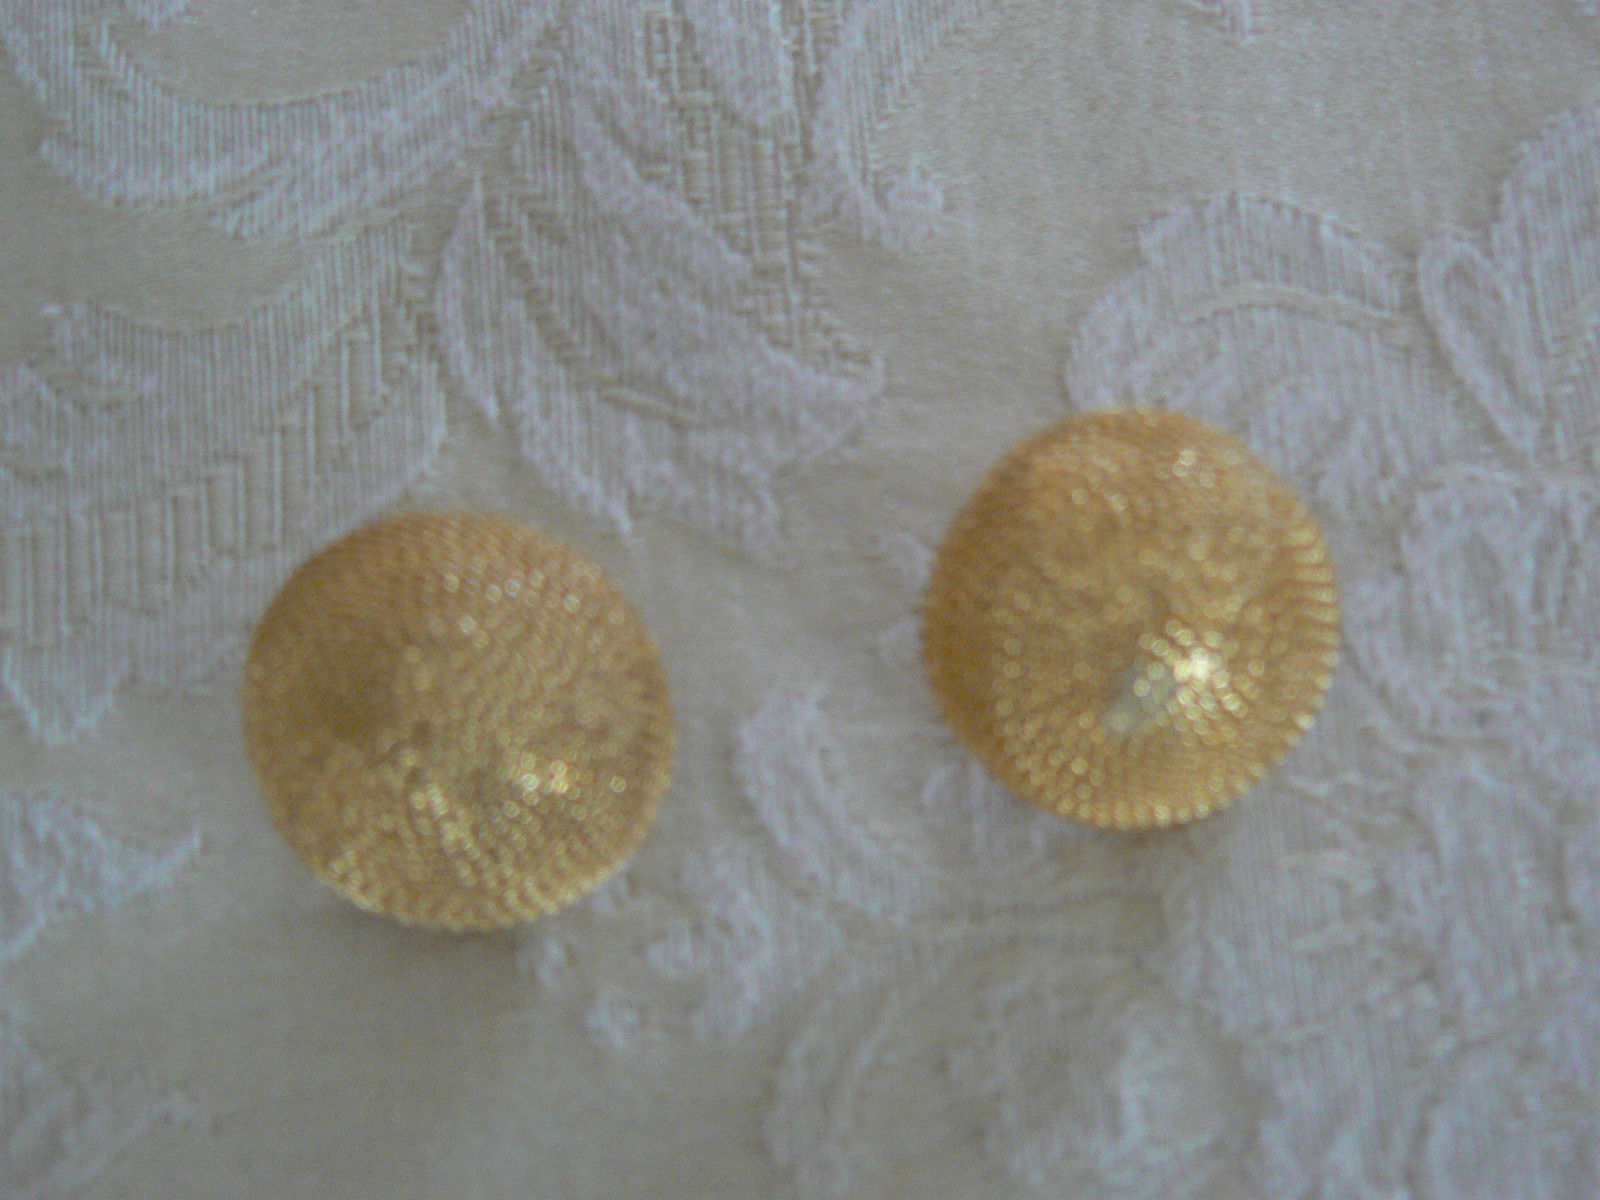 Stunning Vintage Napier Goldtone Large Button Clip On Earrings image 2